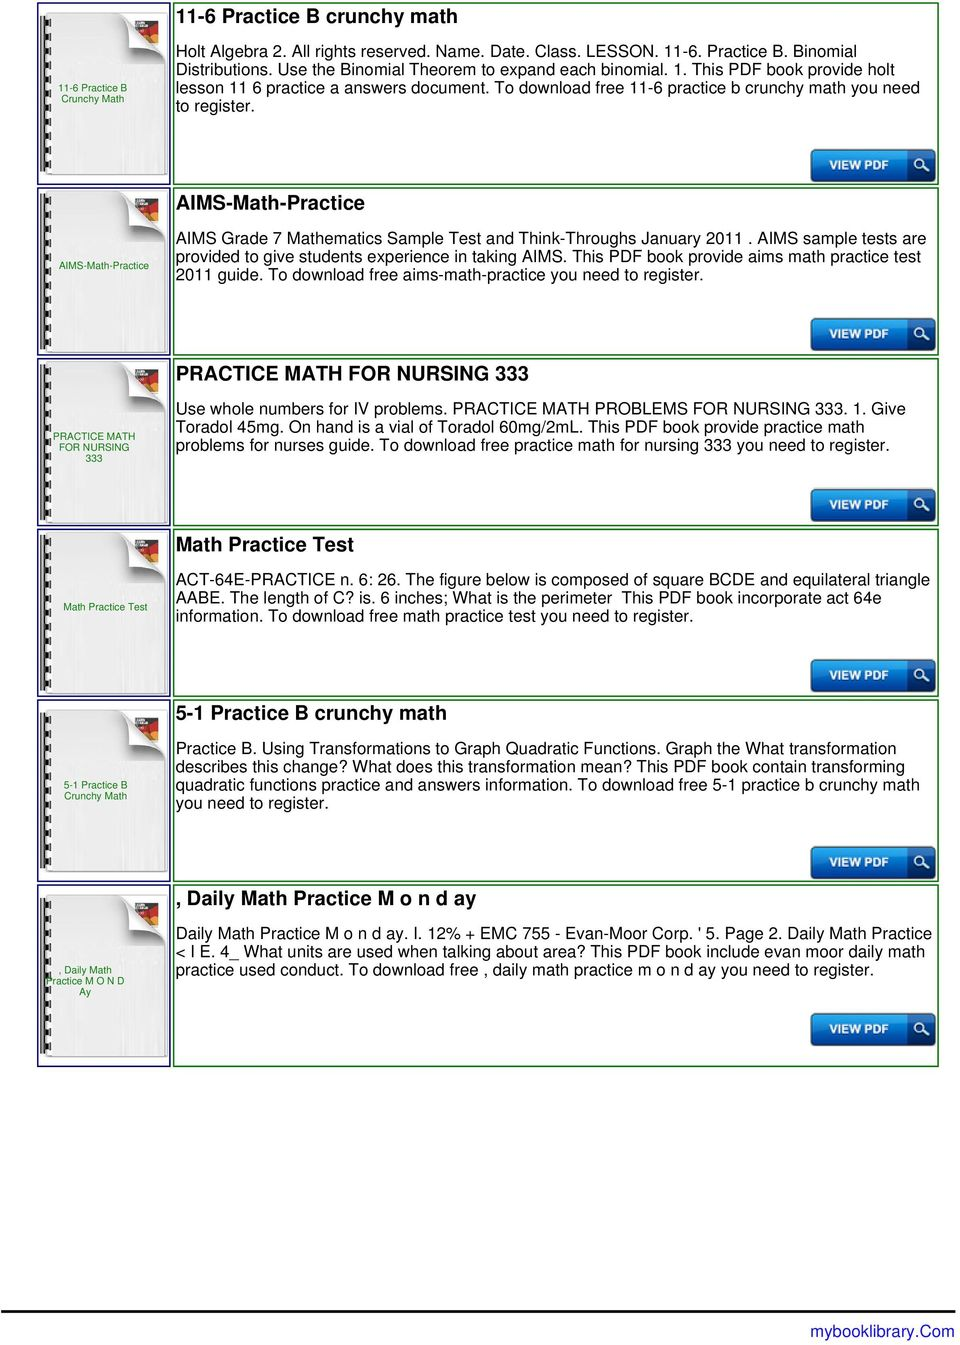 To download free 11-6 practice b crunchy math you need to AIMS-Math-Practice AIMS-Math-Practice AIMS Grade 7 Mathematics Sample Test and Think-Throughs January 2011.